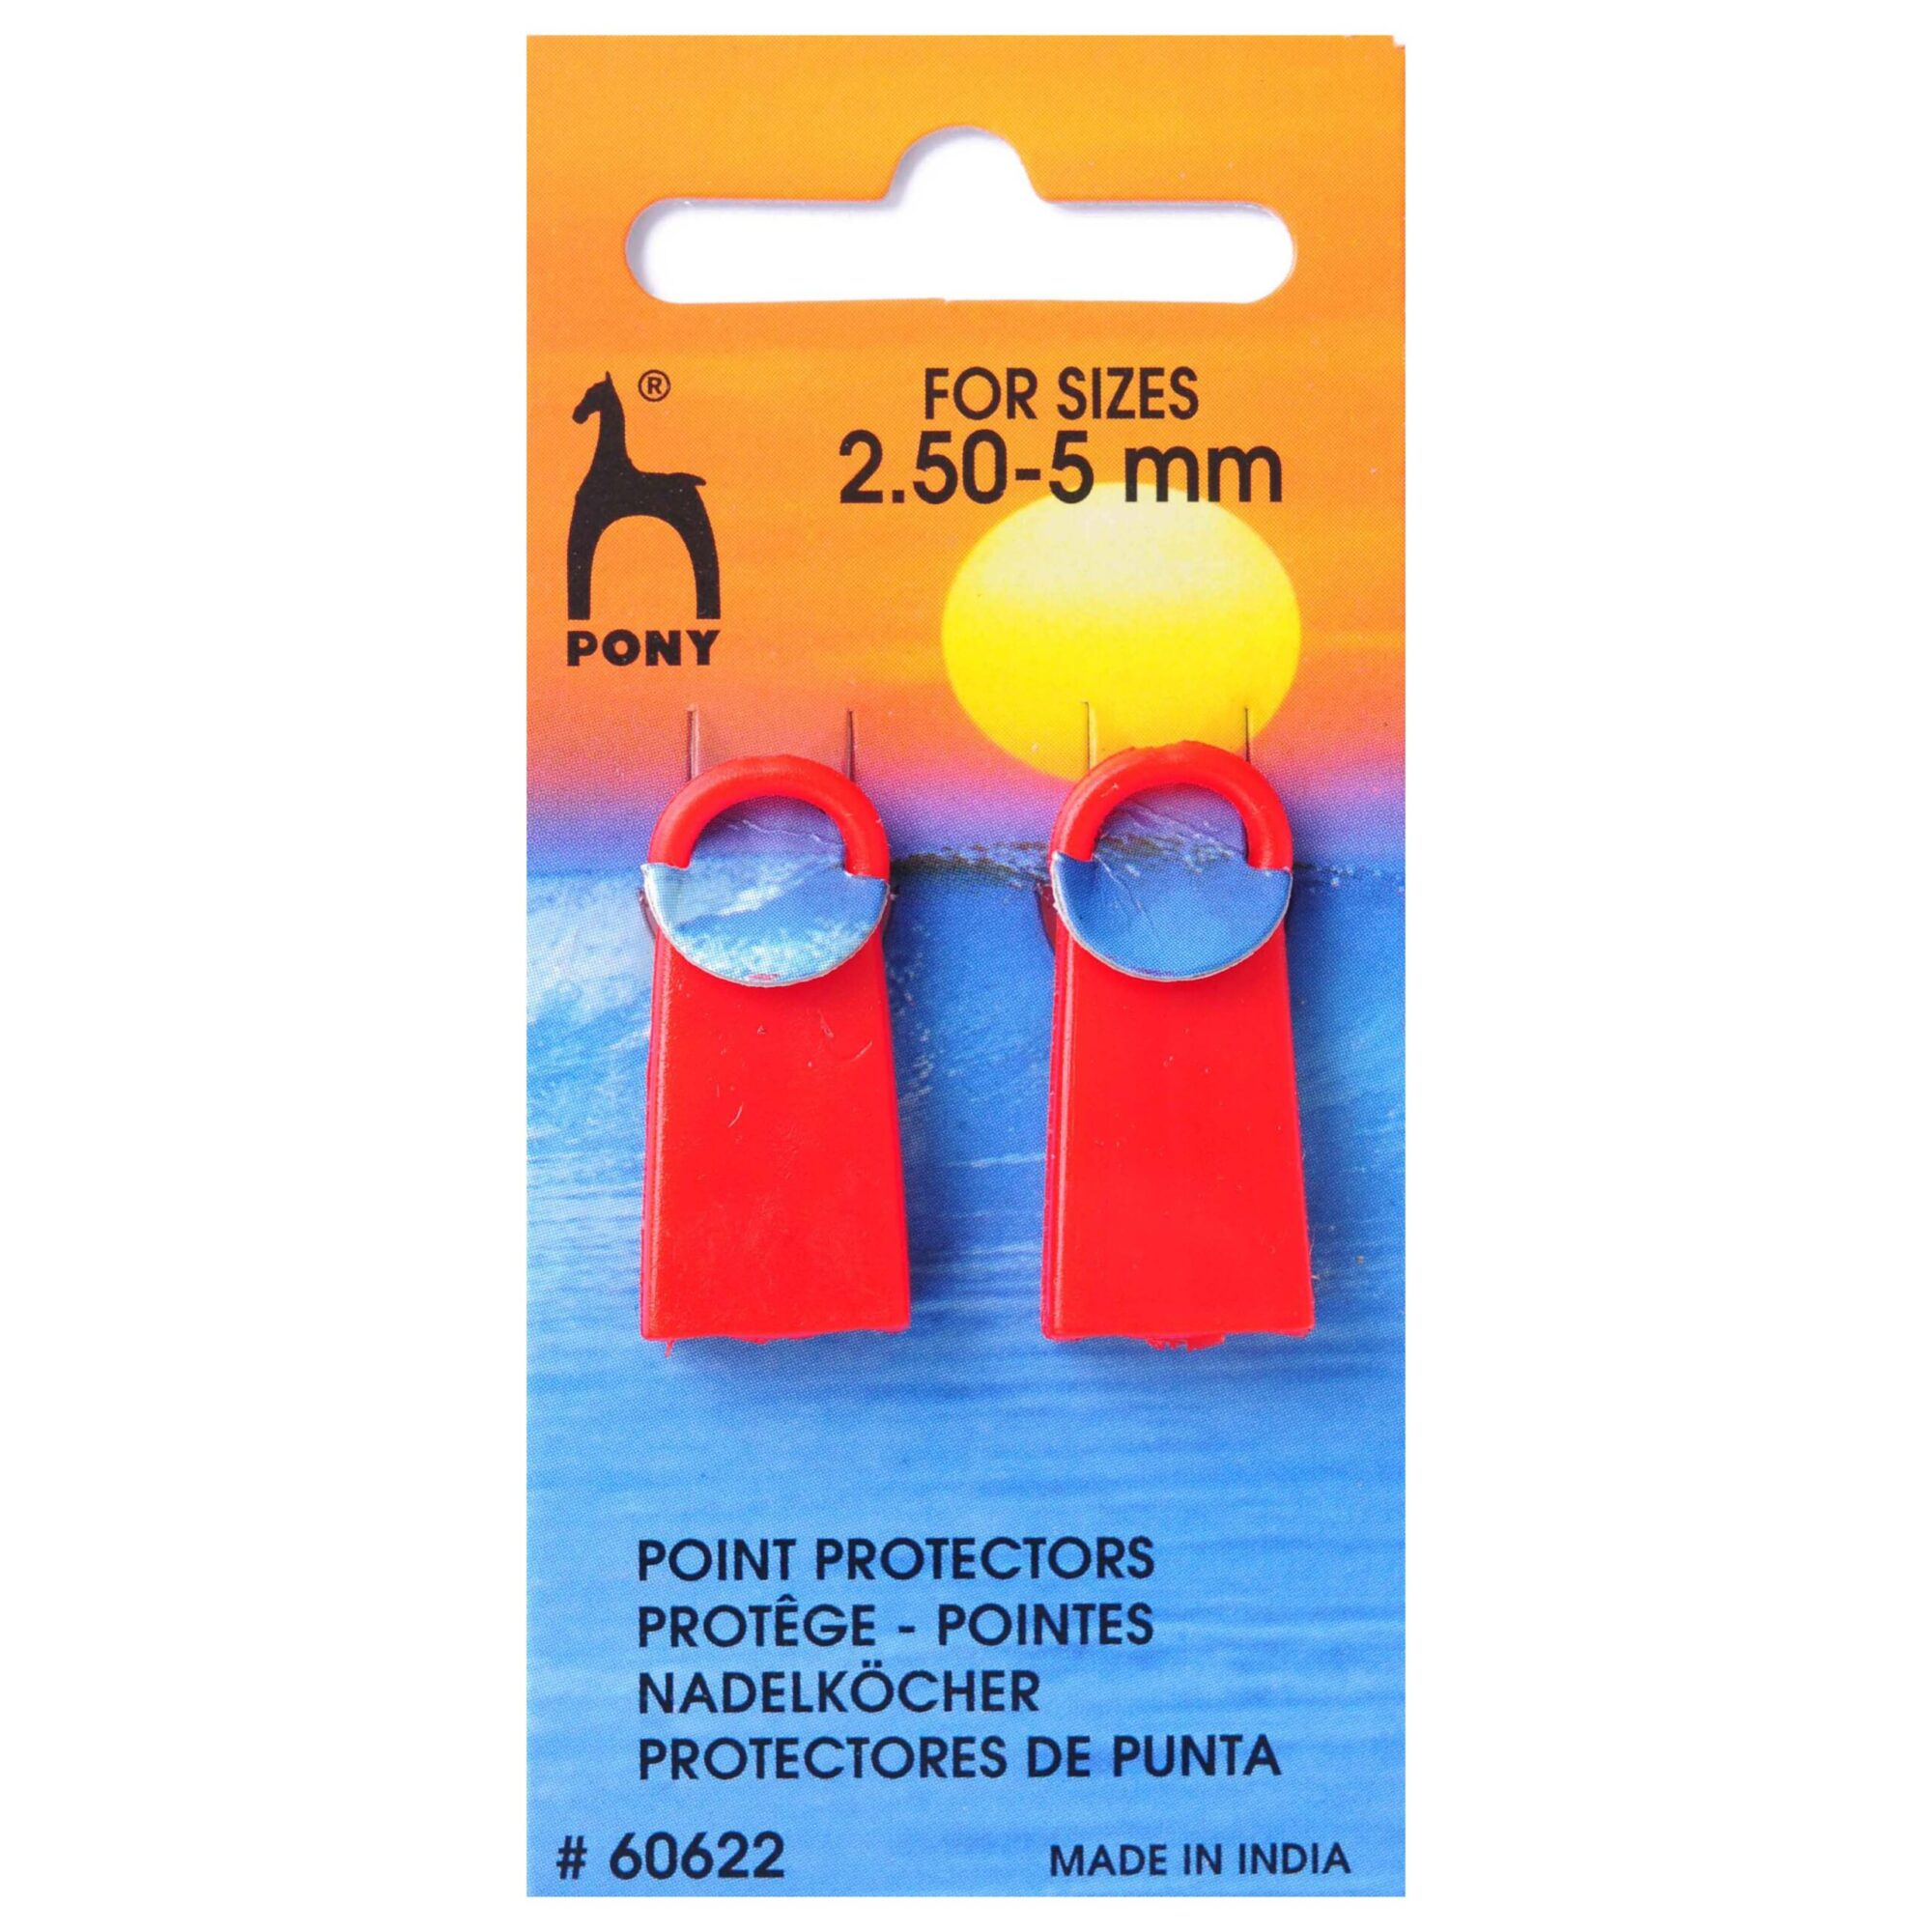 Point Protector – Standard Size product image